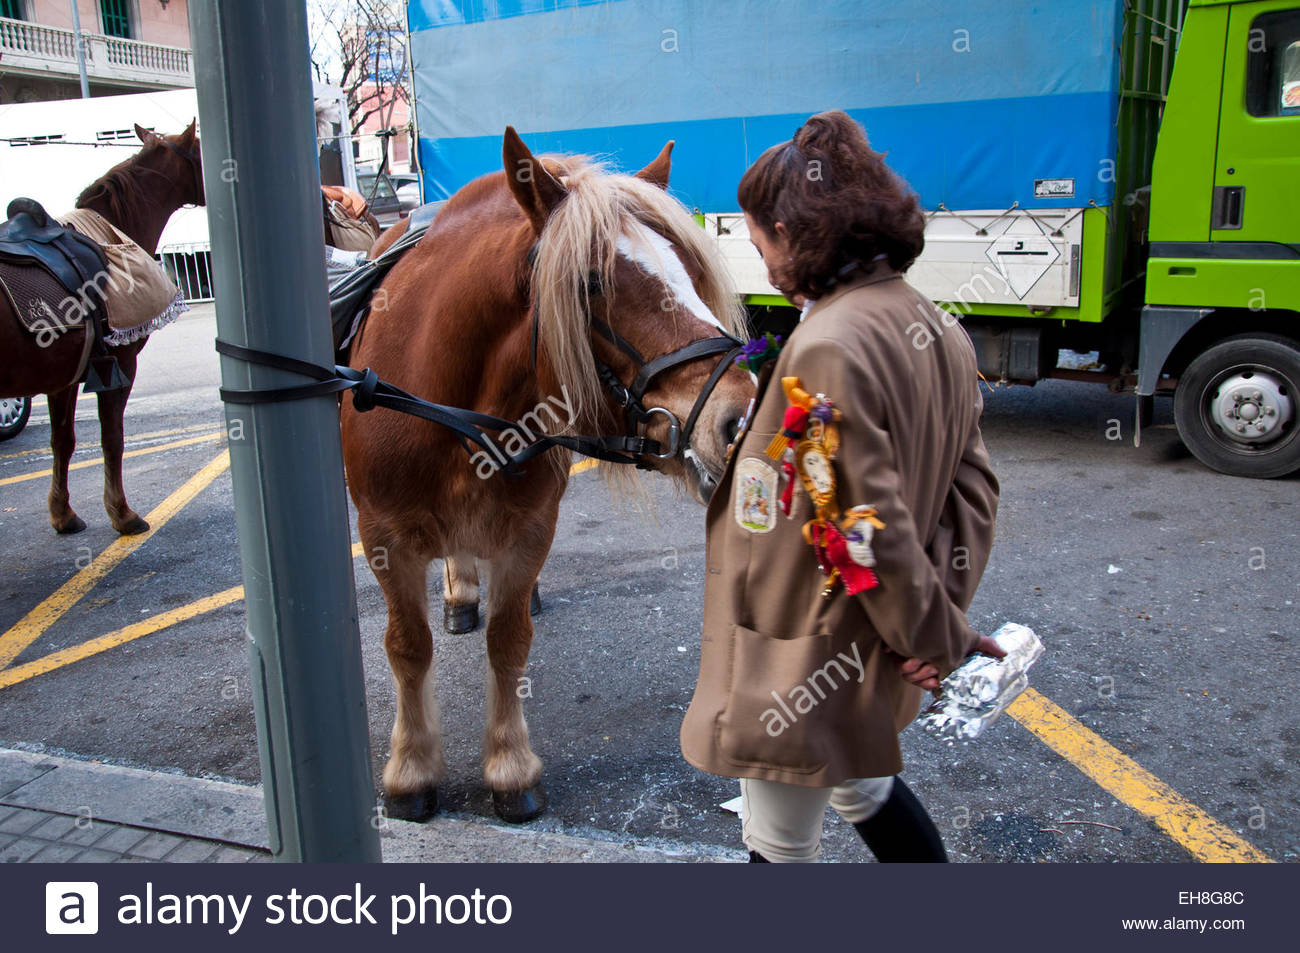 Horse and horsewoman playing, Fiesta de Sant Medir 2015, Gracia Barcelona Spain - Stock Image